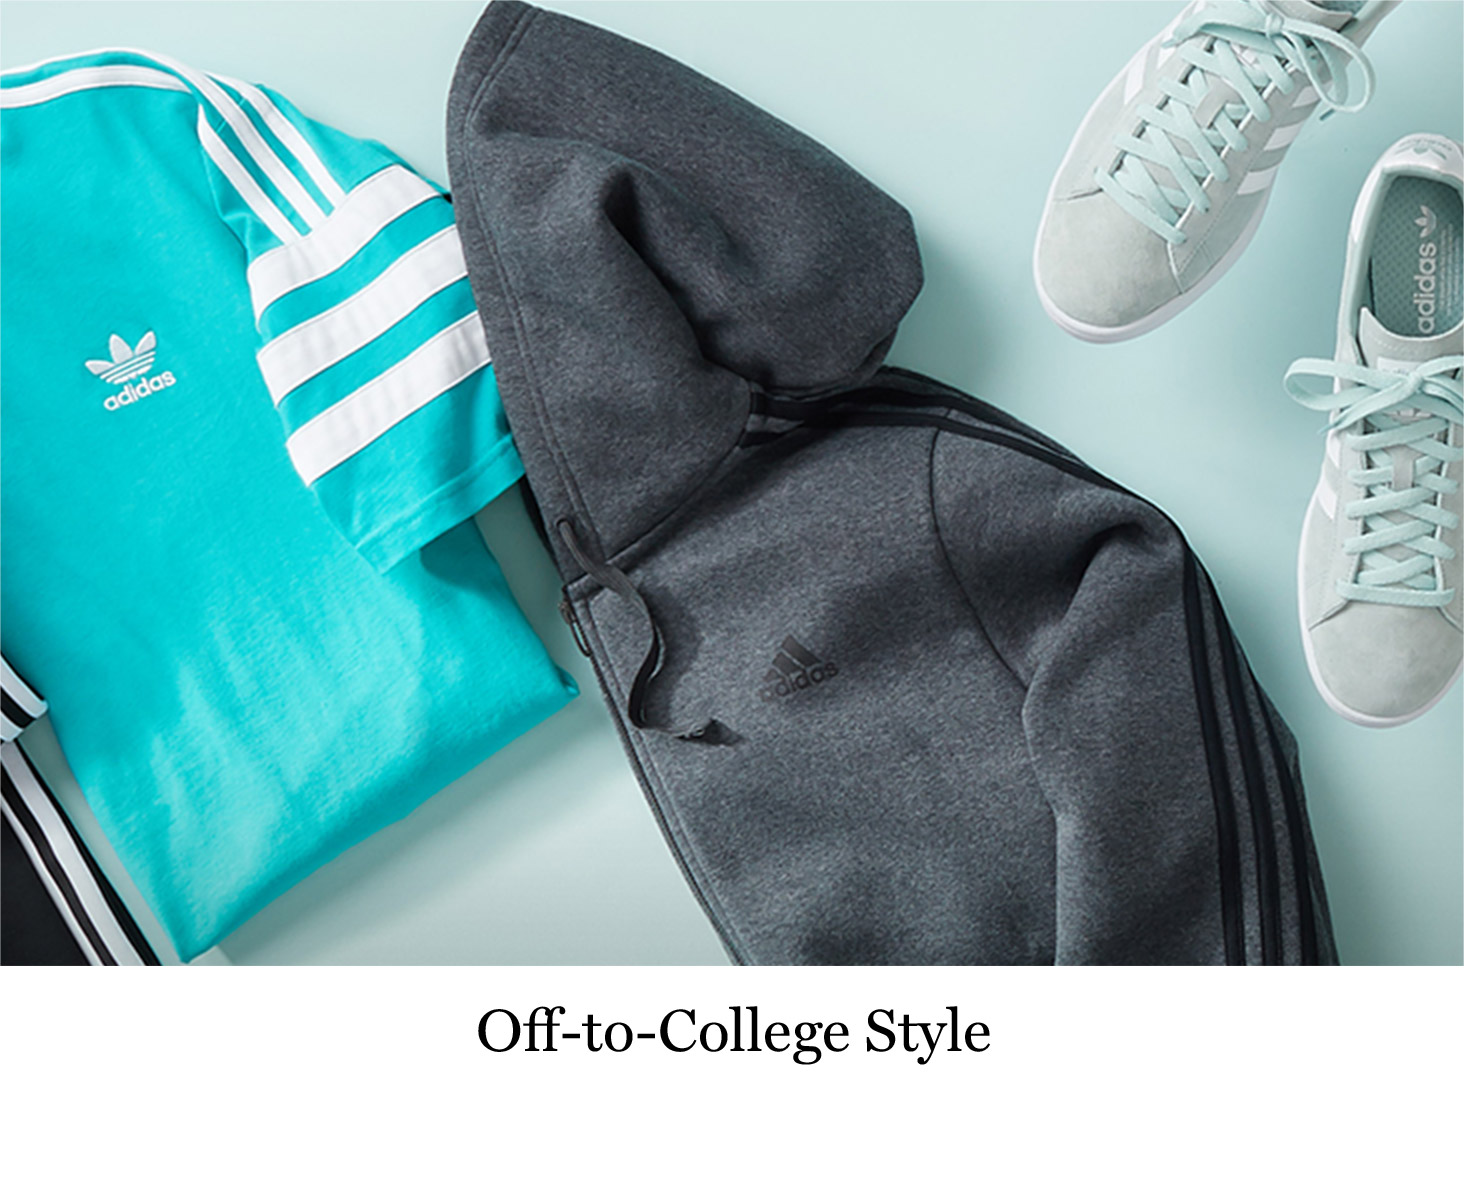 Off-to-College Style